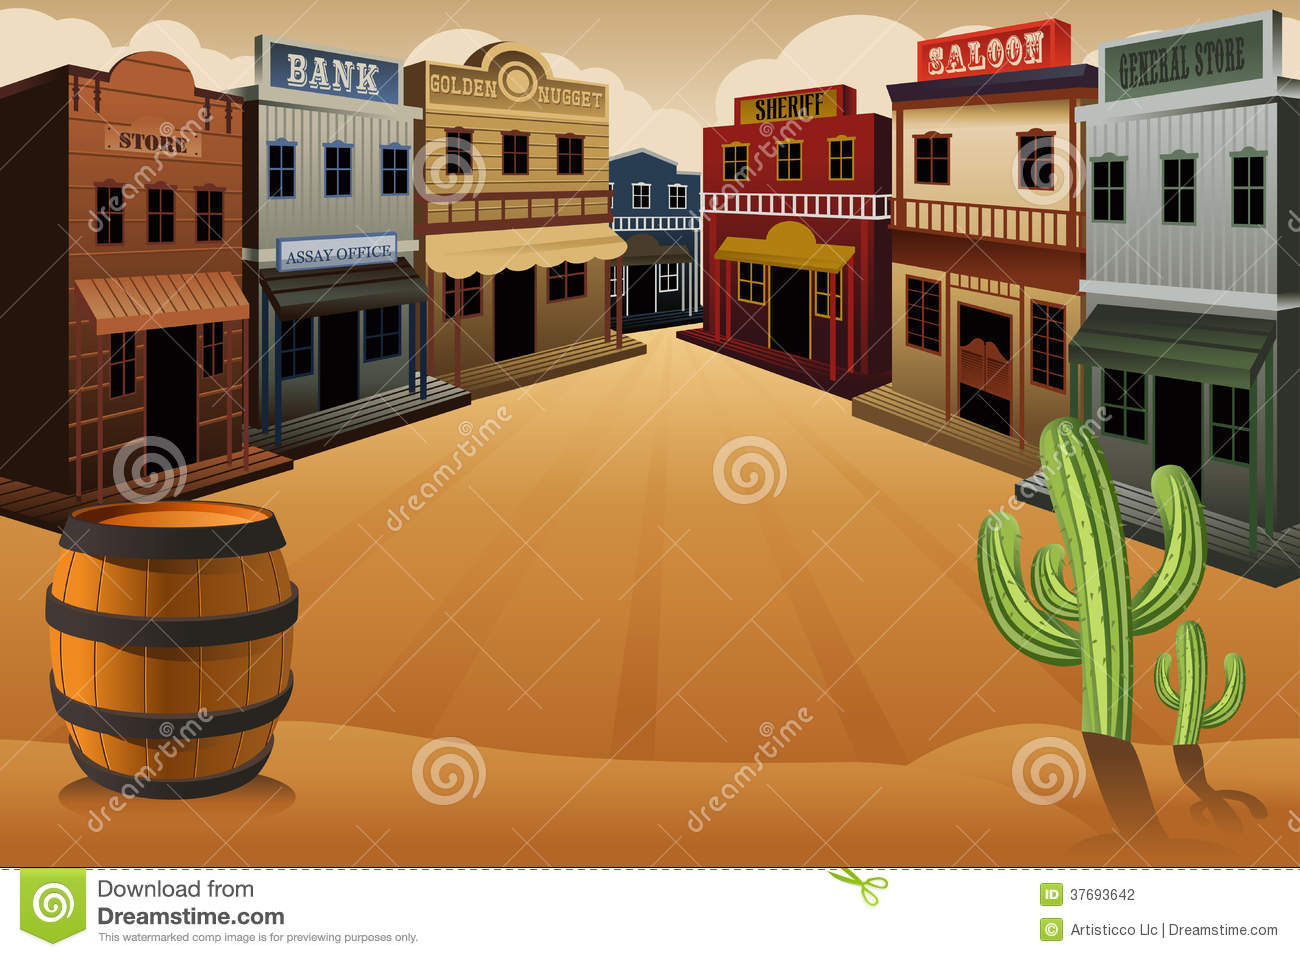 Western town background clipart.